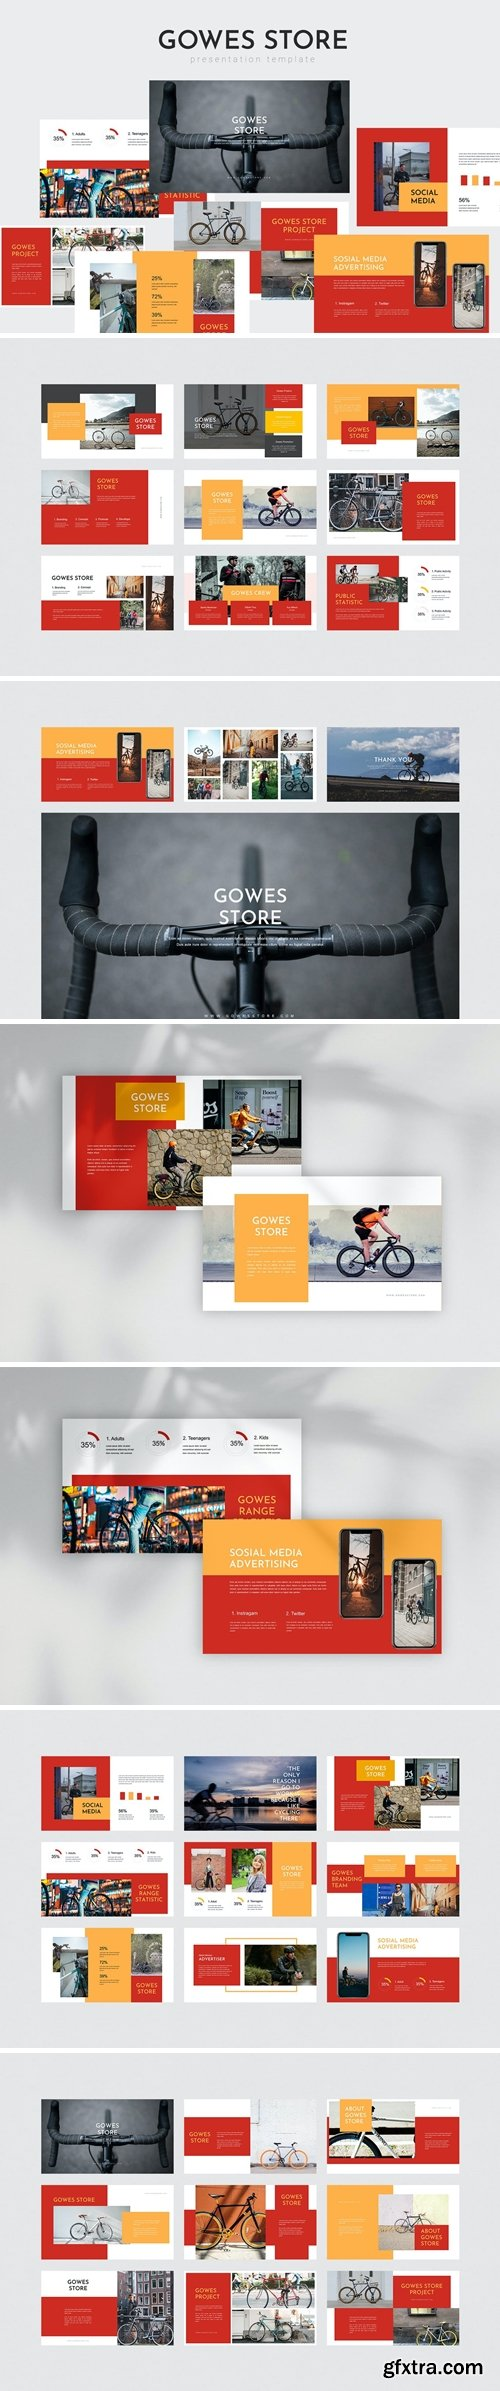 Gowes Store - Powerpoint Template